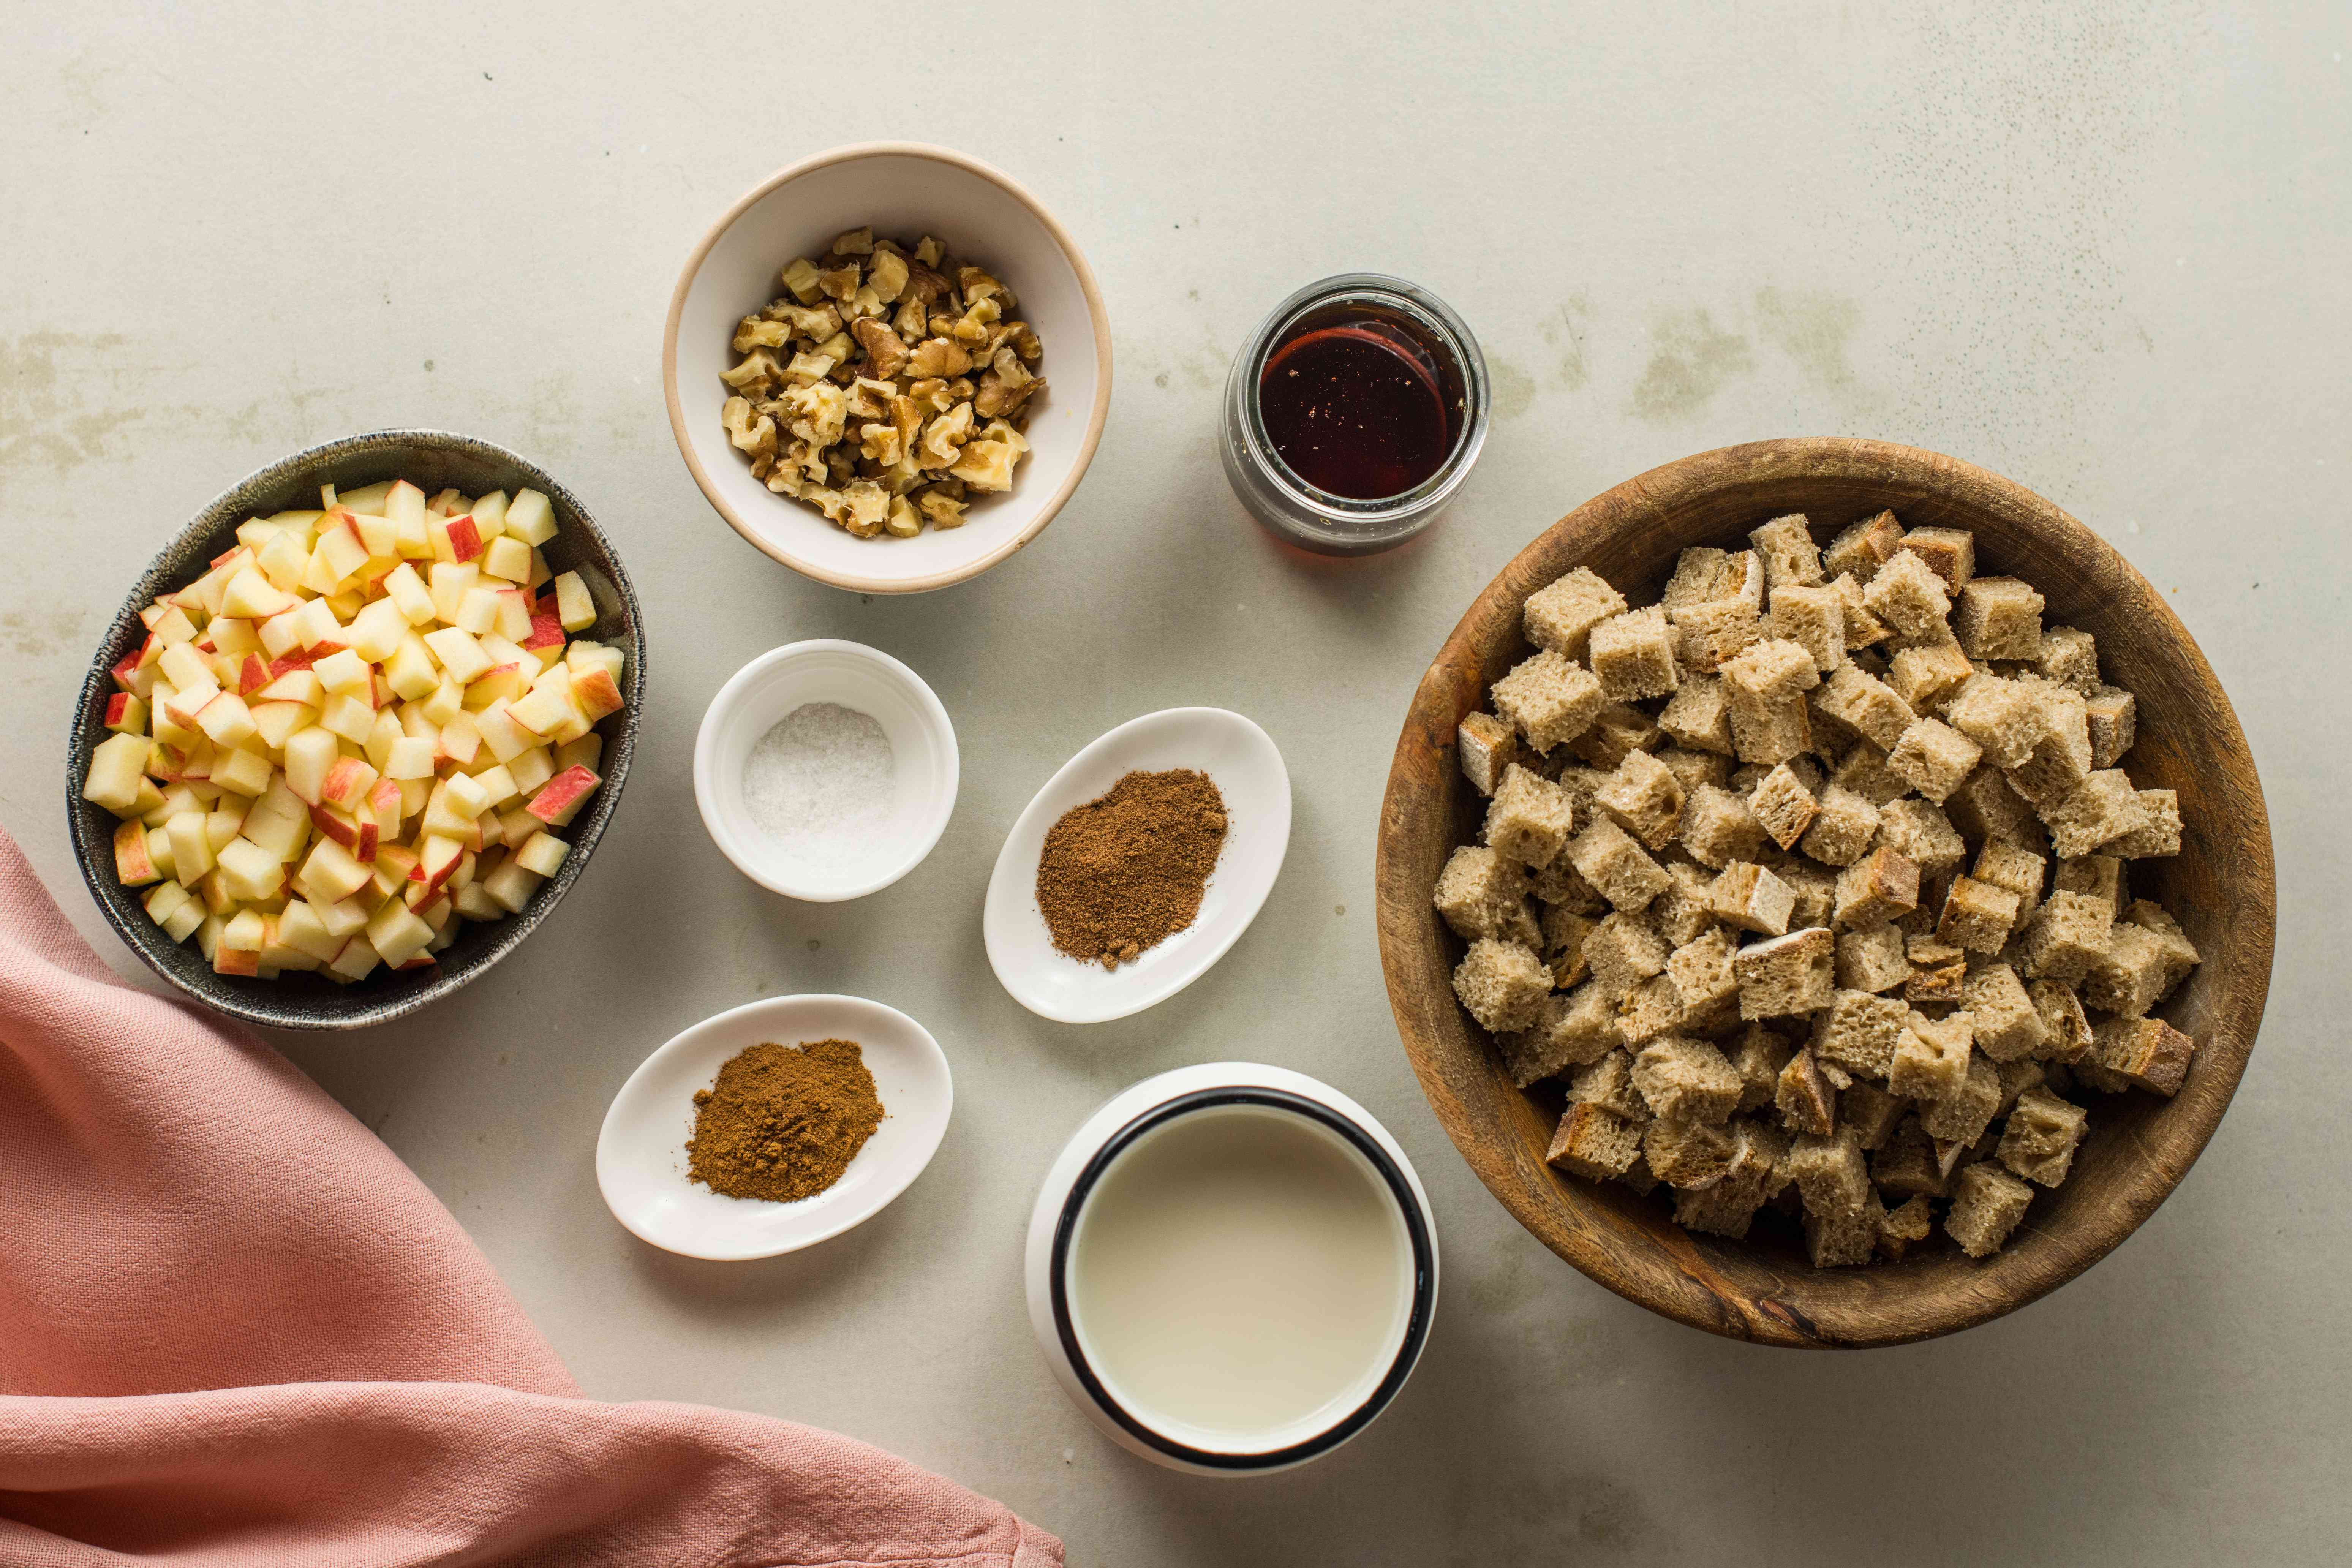 Ingredients for apple bread pudding